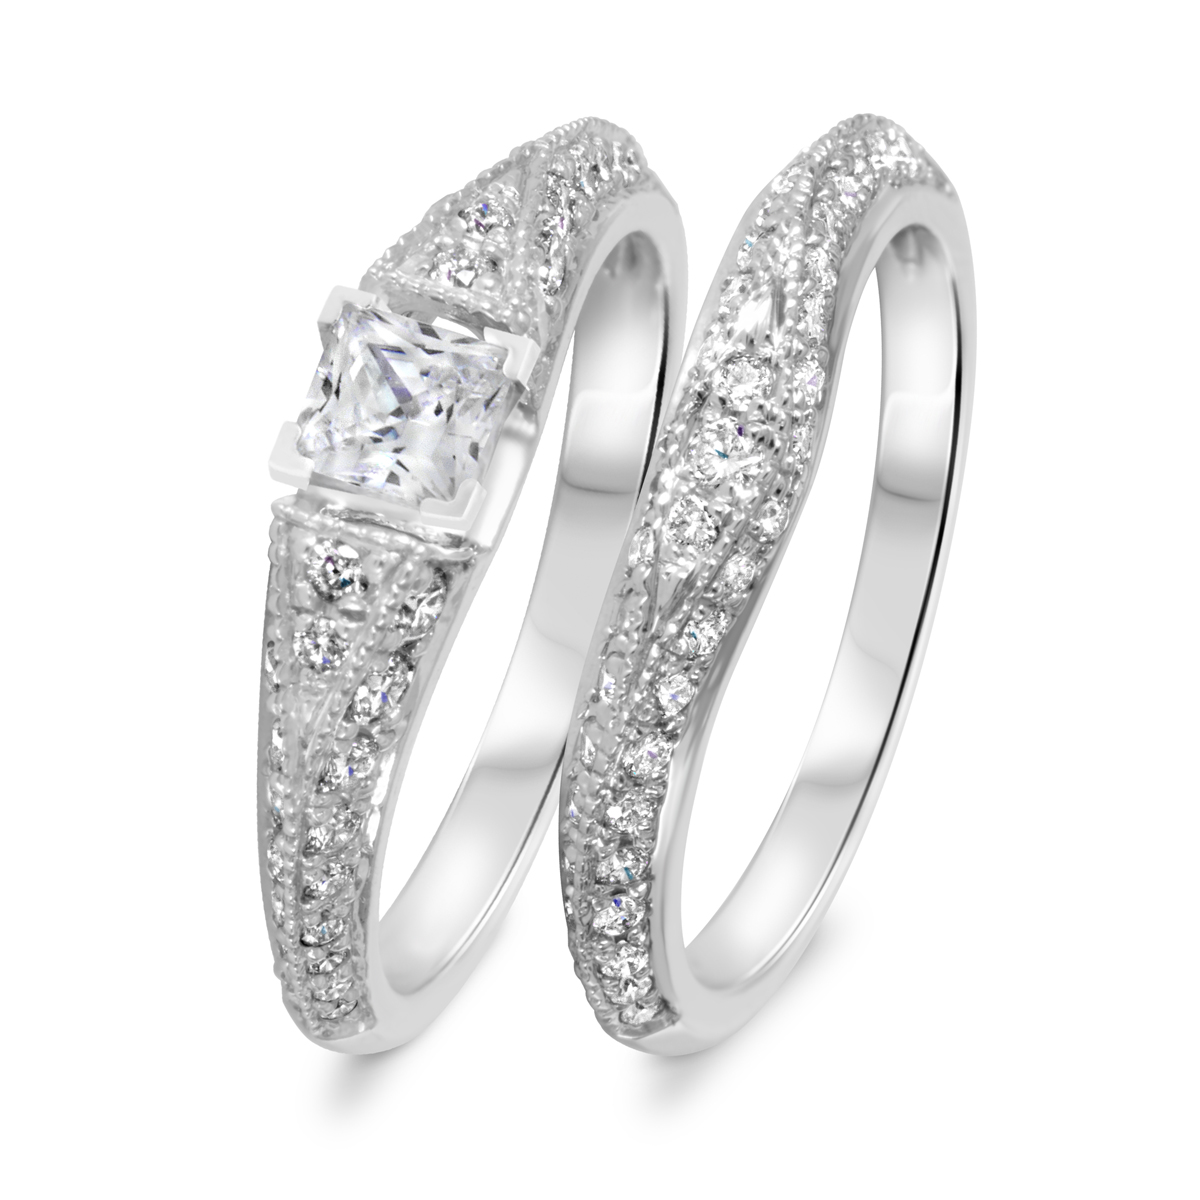 1 1/6 CT. T.W. Diamond Women's Bridal Wedding Ring Set 10K White Gold